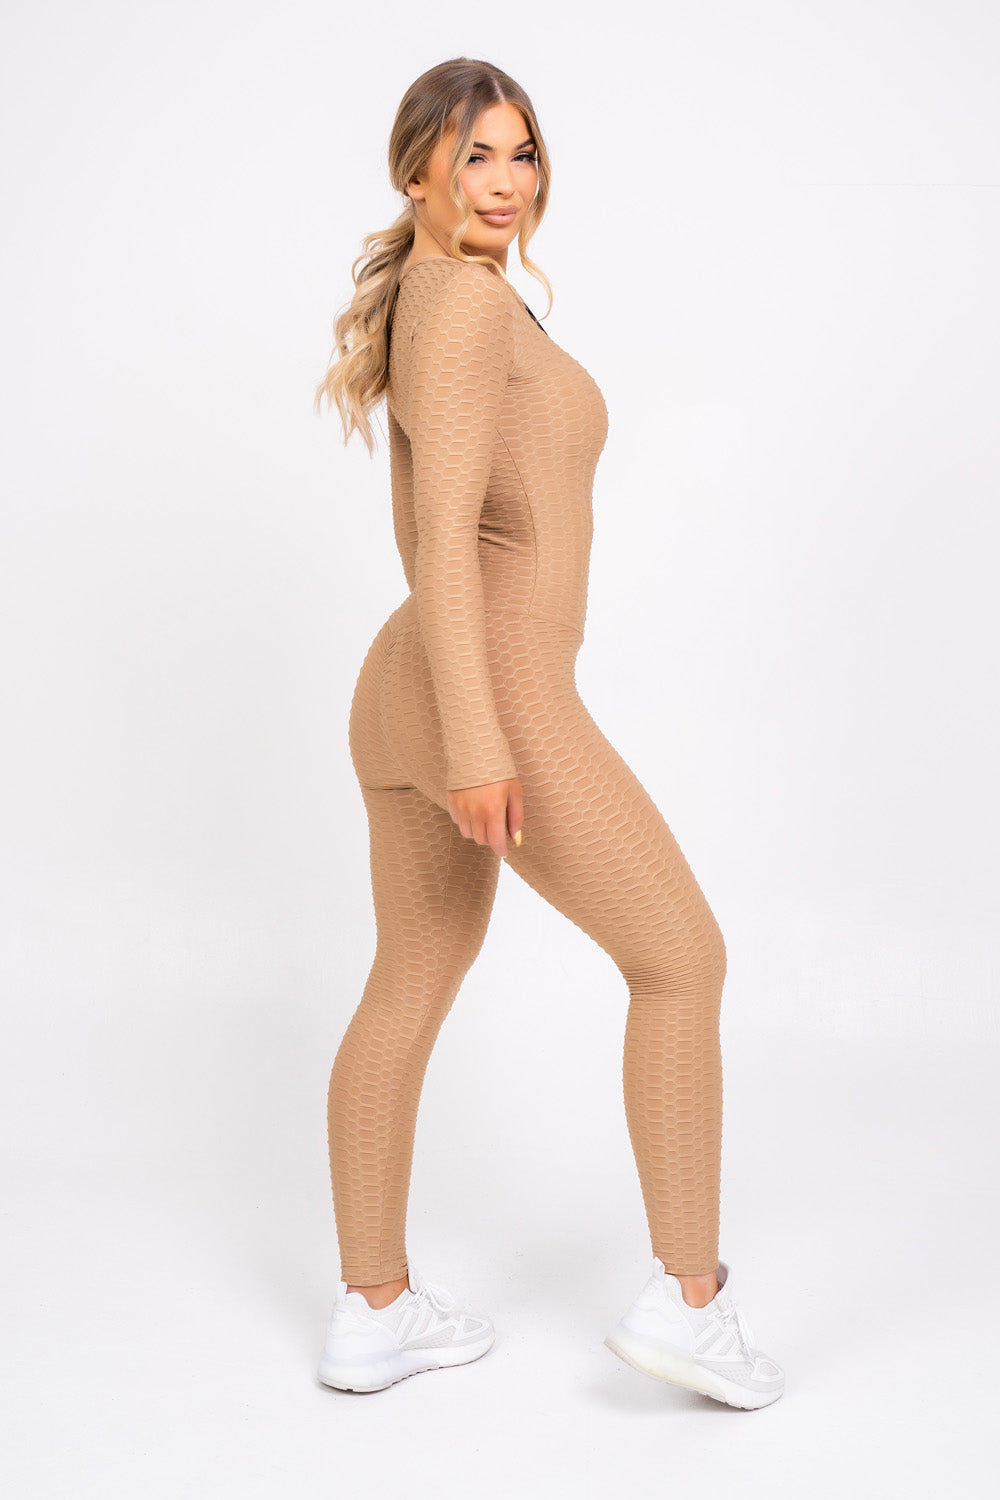 Cali Sand Honeycomb Contouring Push Up Jumpsuit Romper